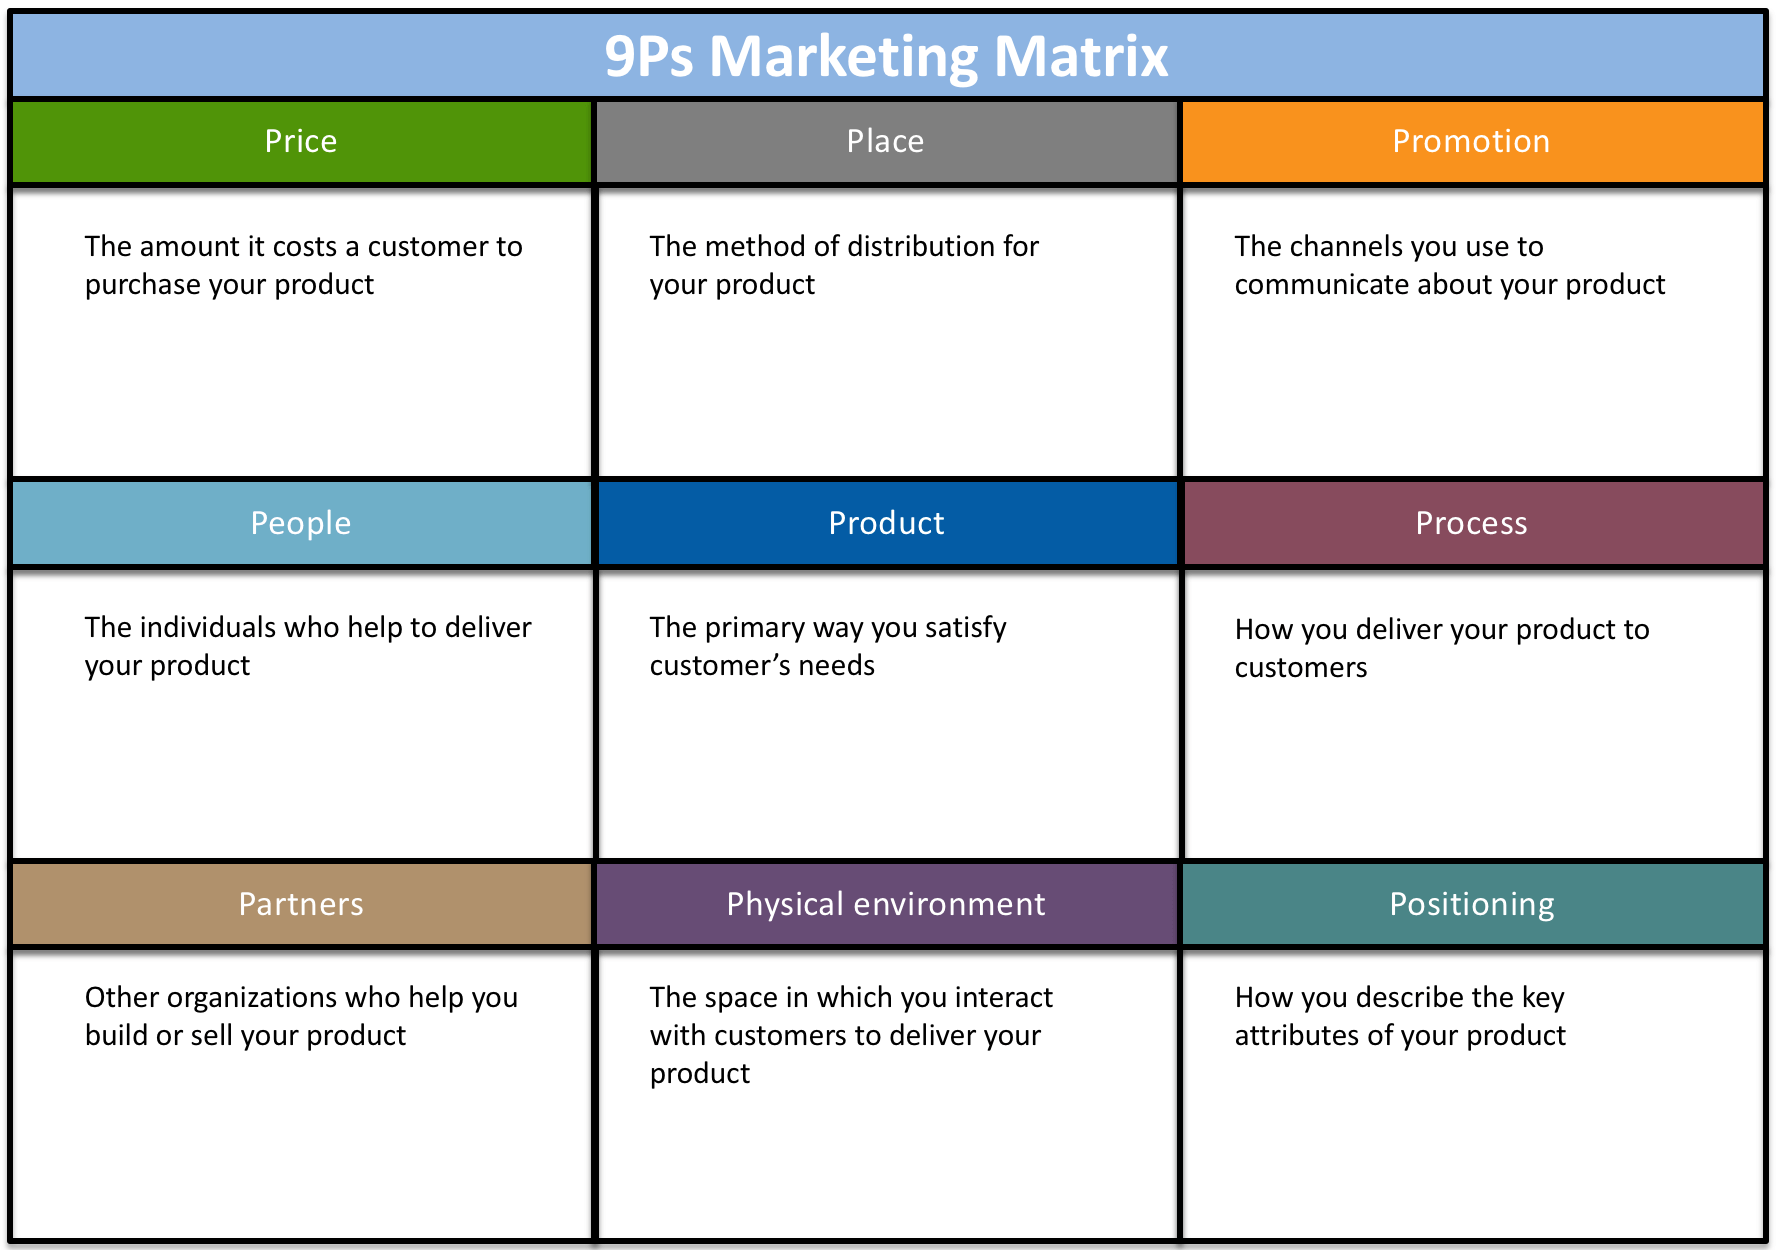 9Ps Marketing Matrix Business planning, Free business